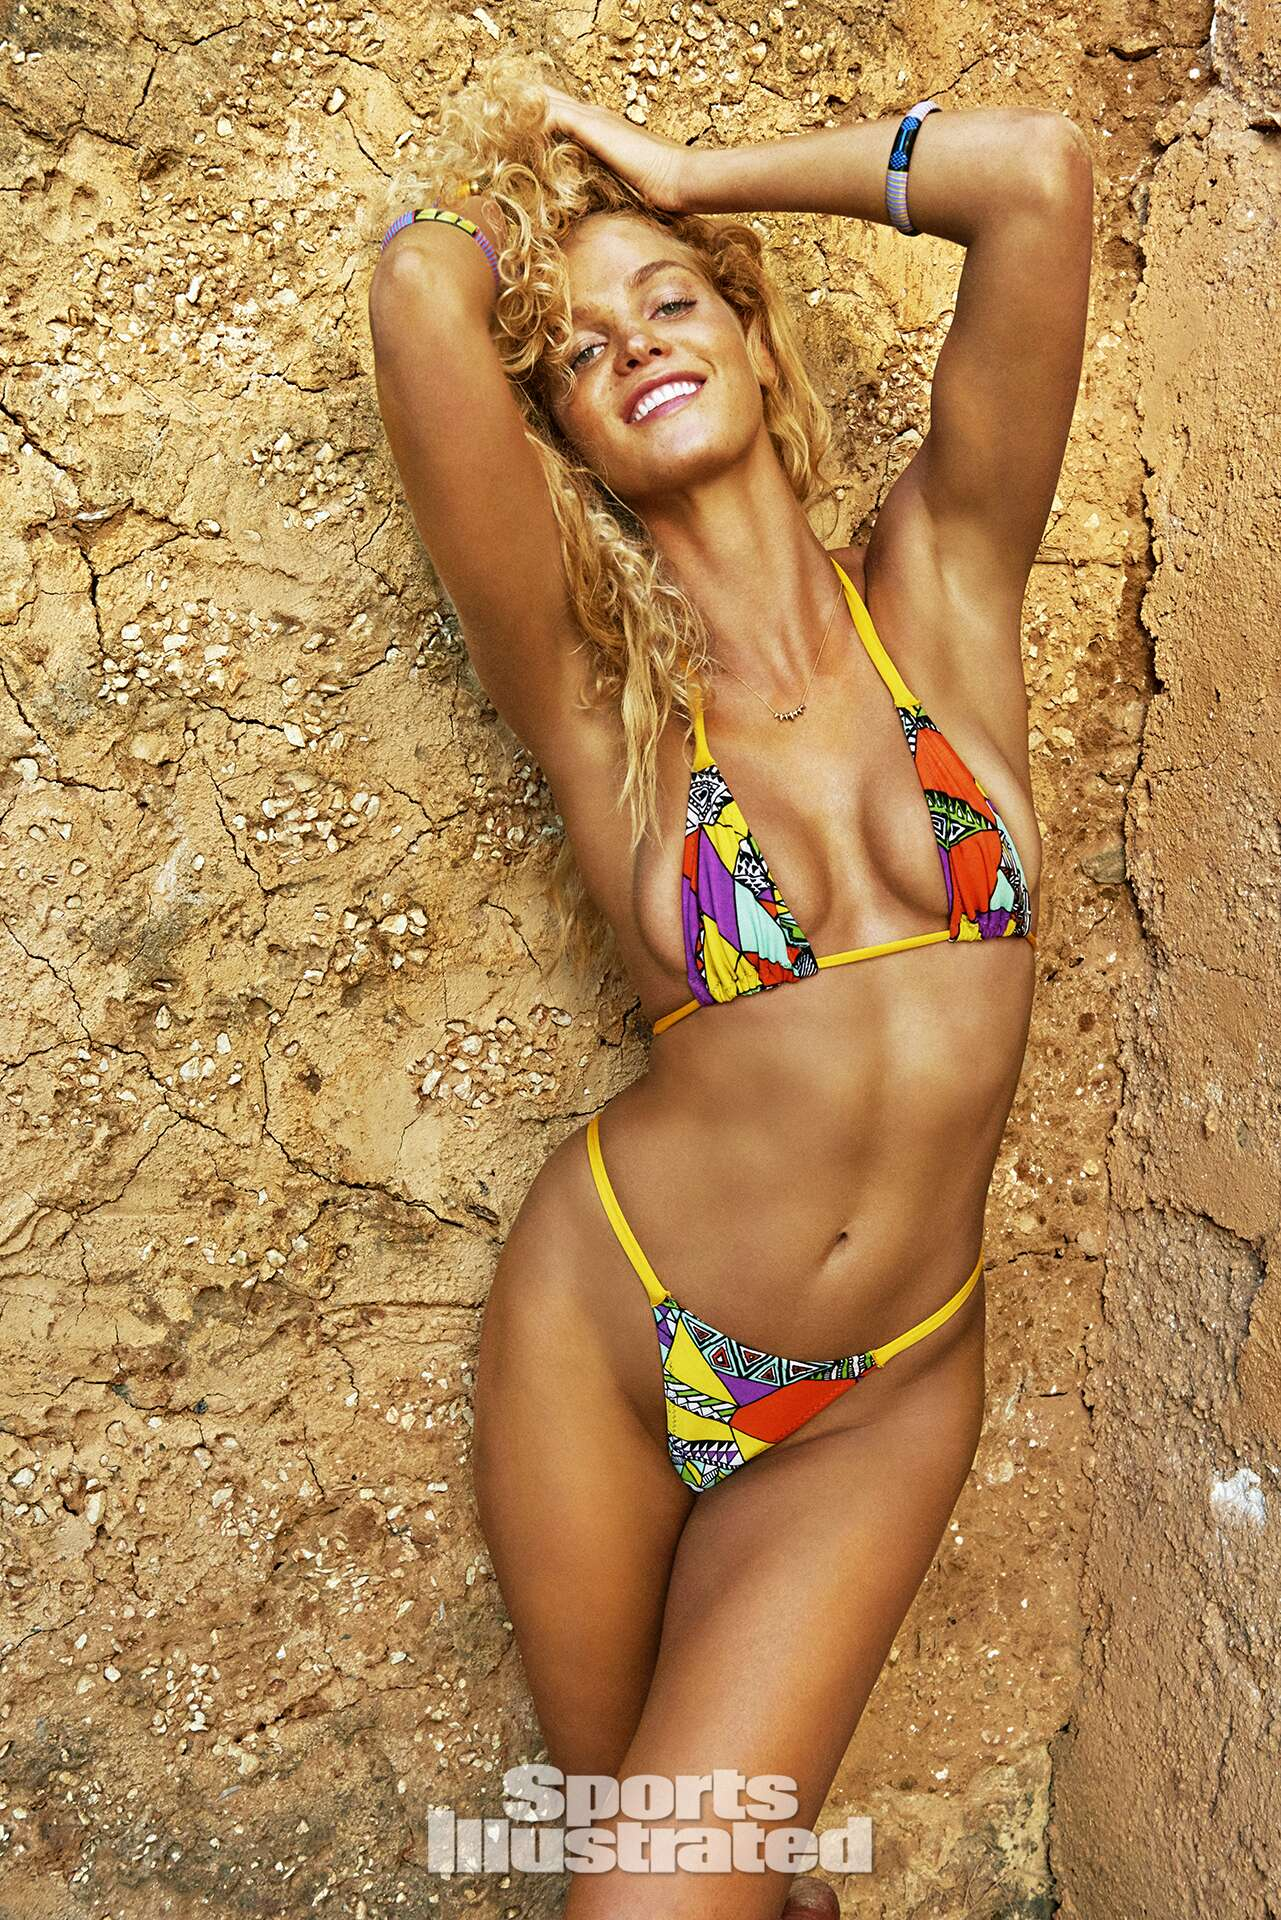 Erin Heatherton was photographed by Ruven Afanador in Zanzibar. Swimsuit by KARO Swimwear.